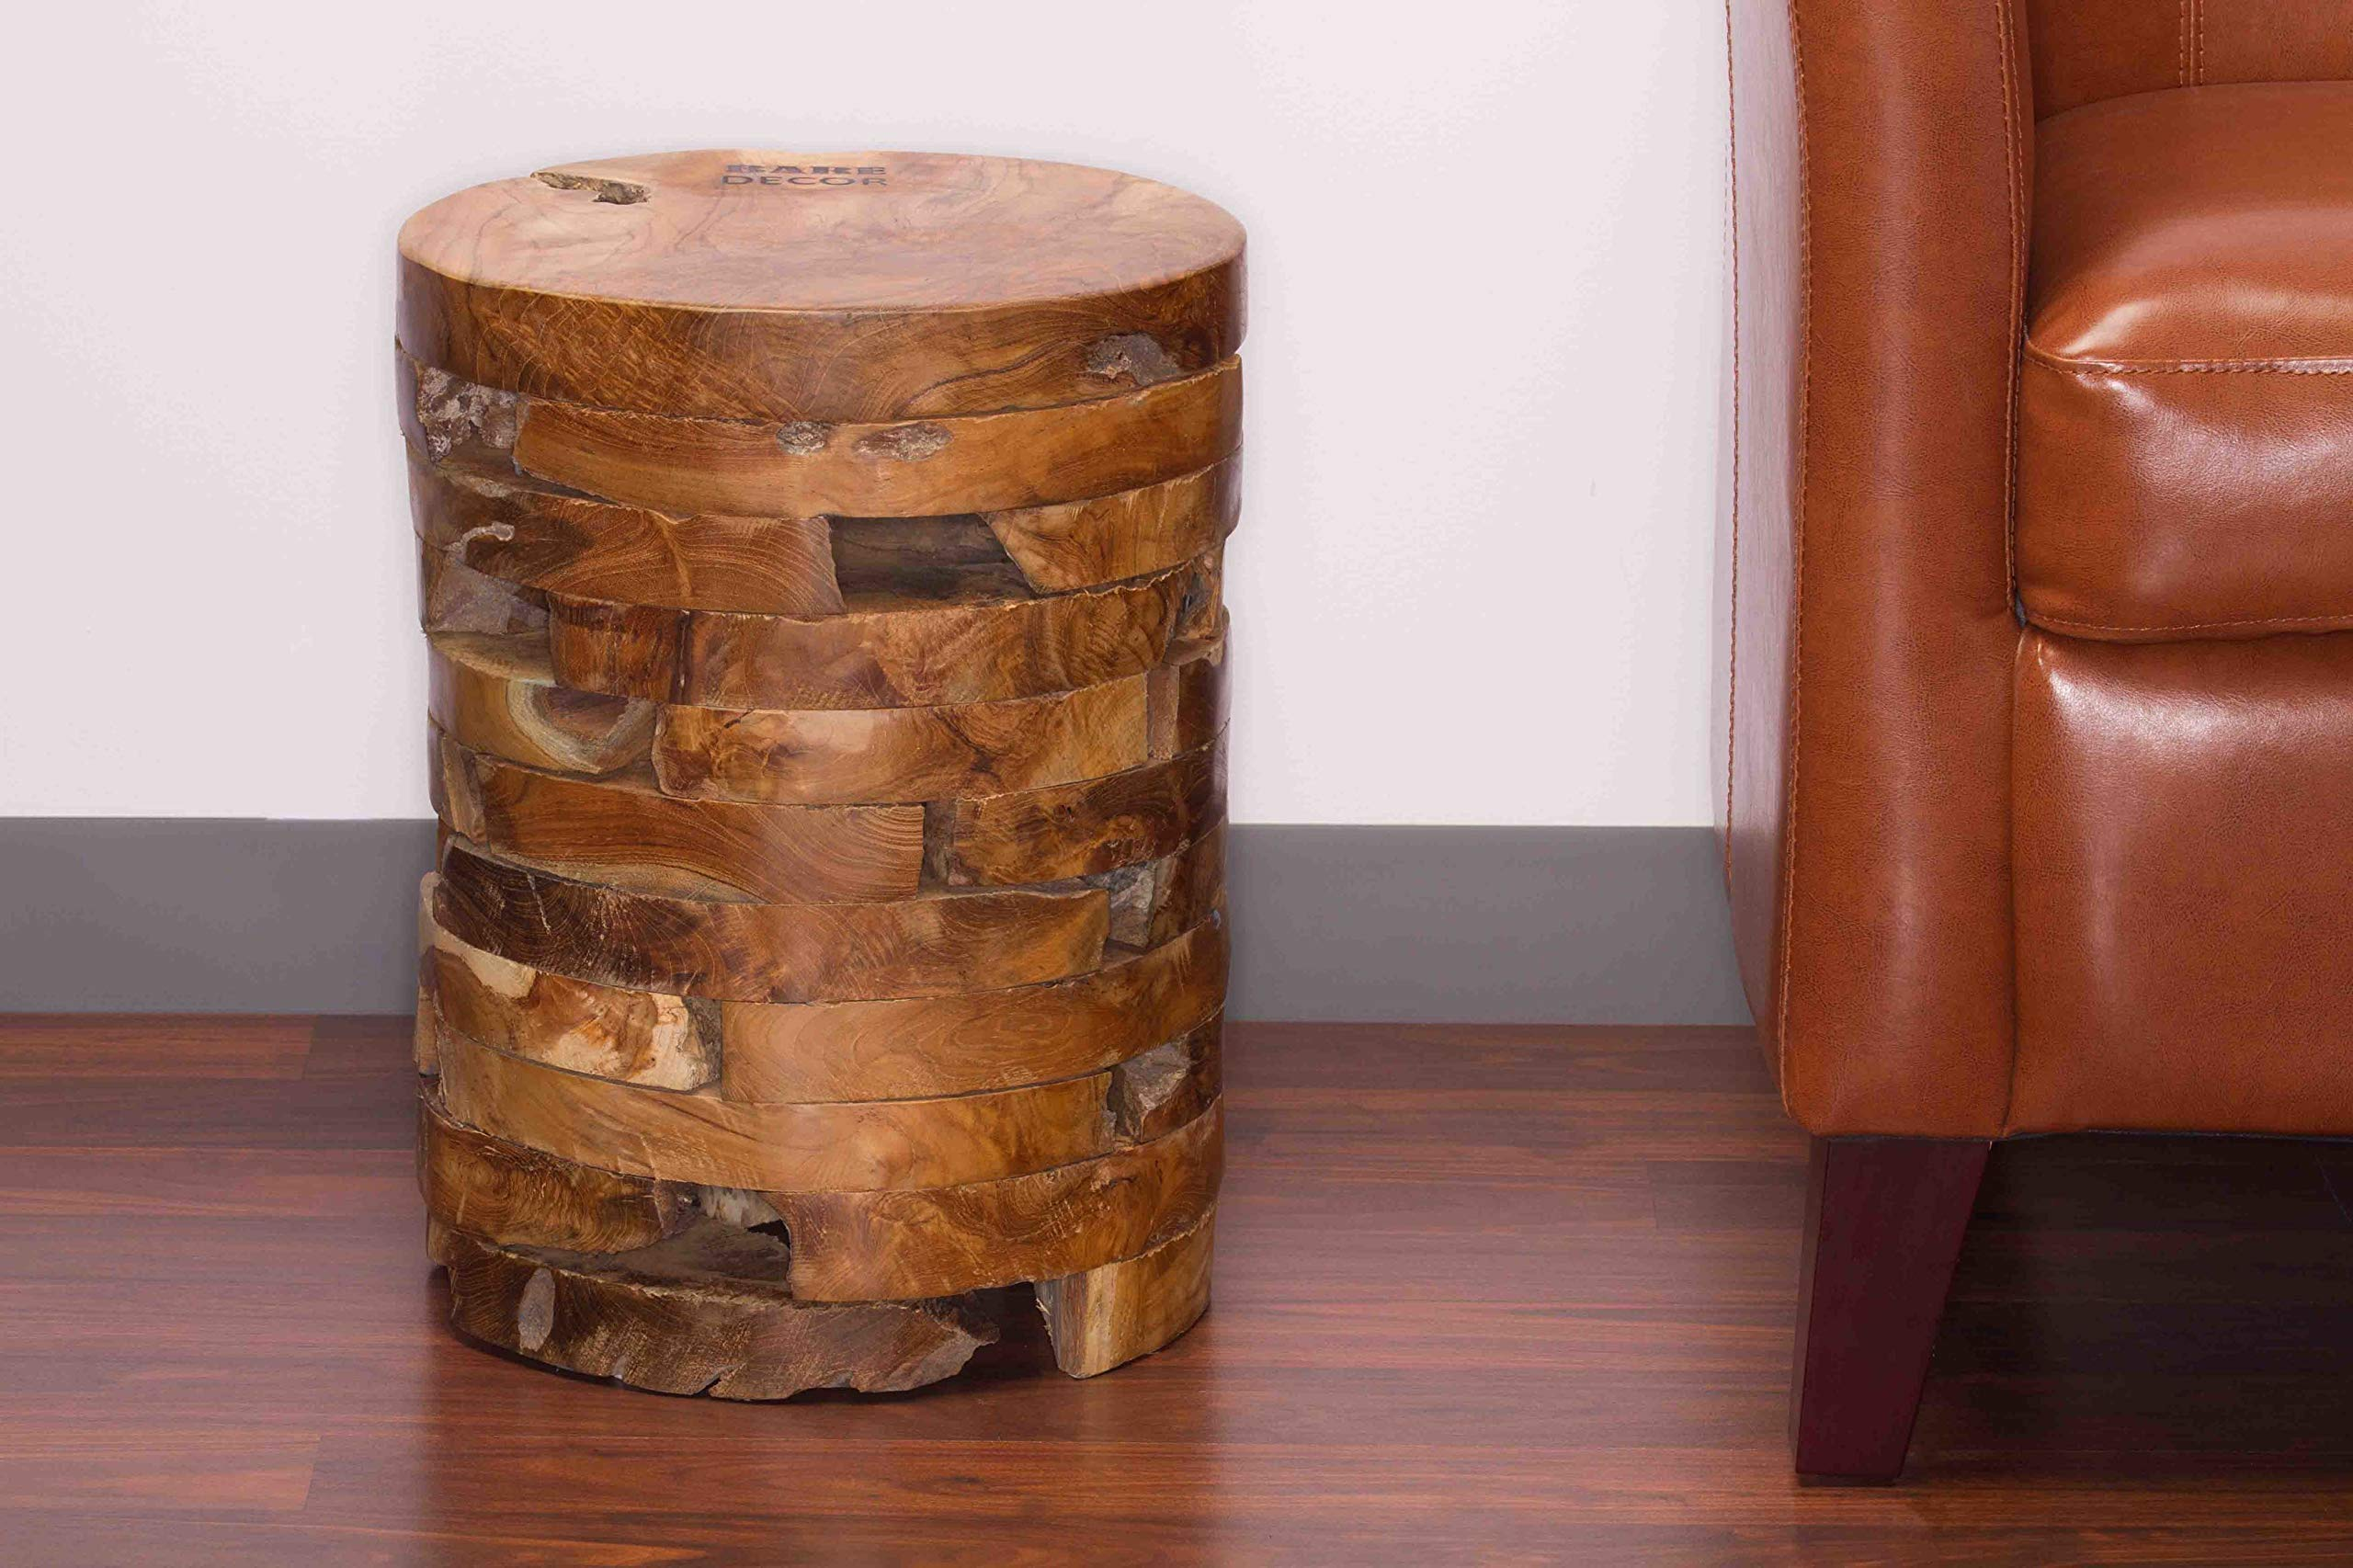 Bare Decor Stonehenge Artisan Accent Table in Solid Teak Wood by Bare Decor